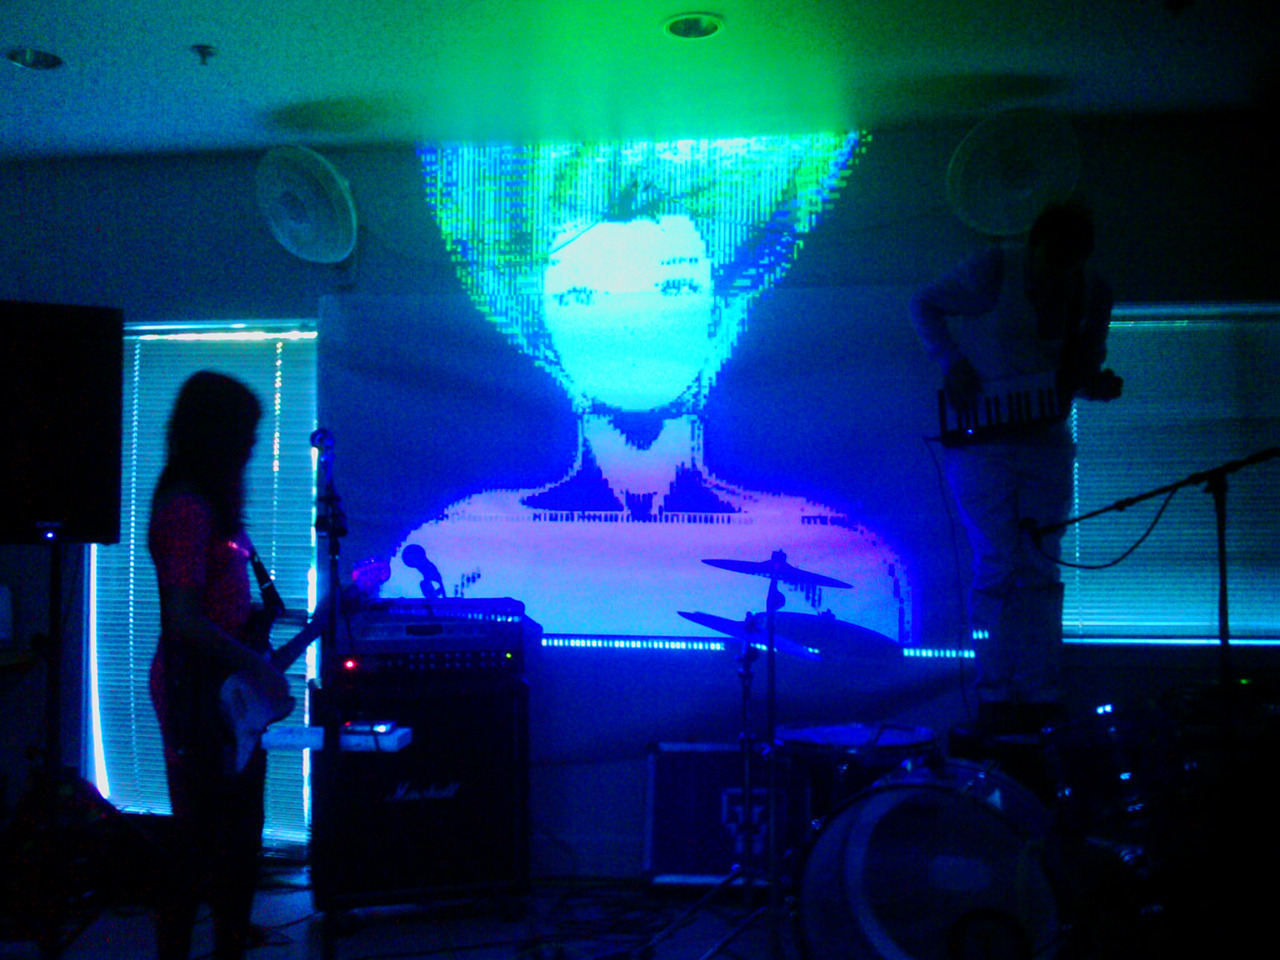 The Glowing Stars performing with me doing visuals. On the right jamming on his drum stool is Matt who organized the Pulsewave SF event at the East Bay Mini Maker Faire. He did a great job pulling it off.